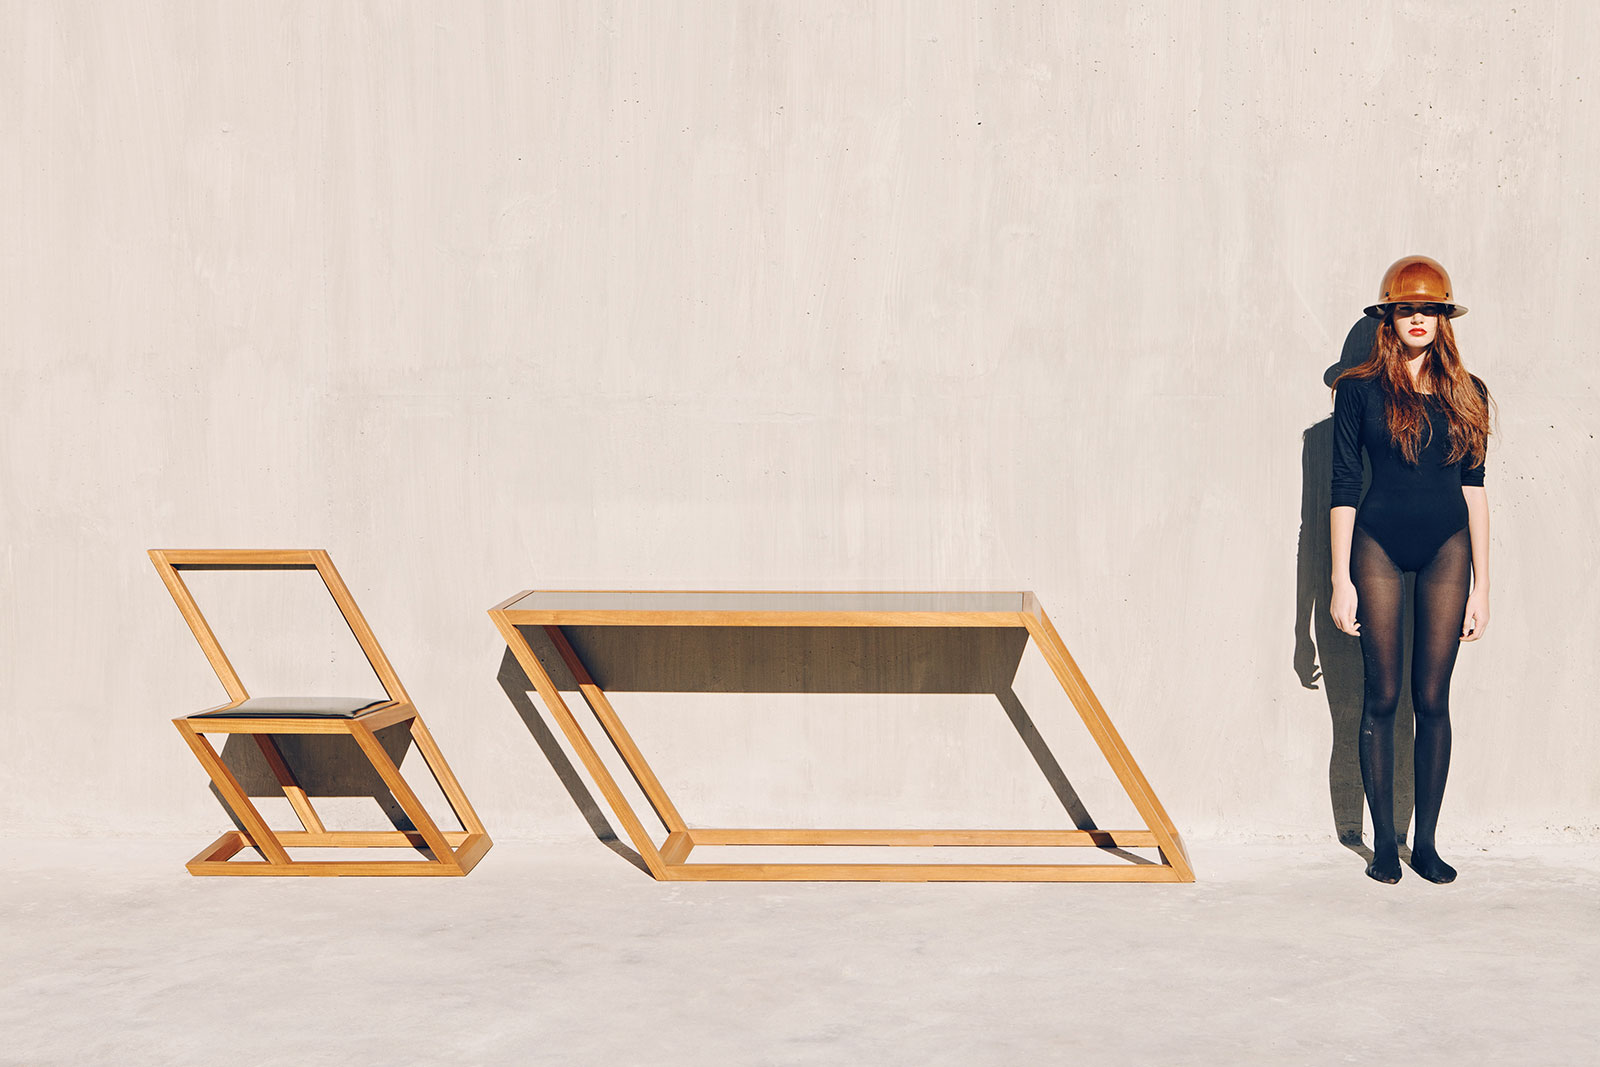 leaning-furniture-collection-by-xyz-integrated-architecture